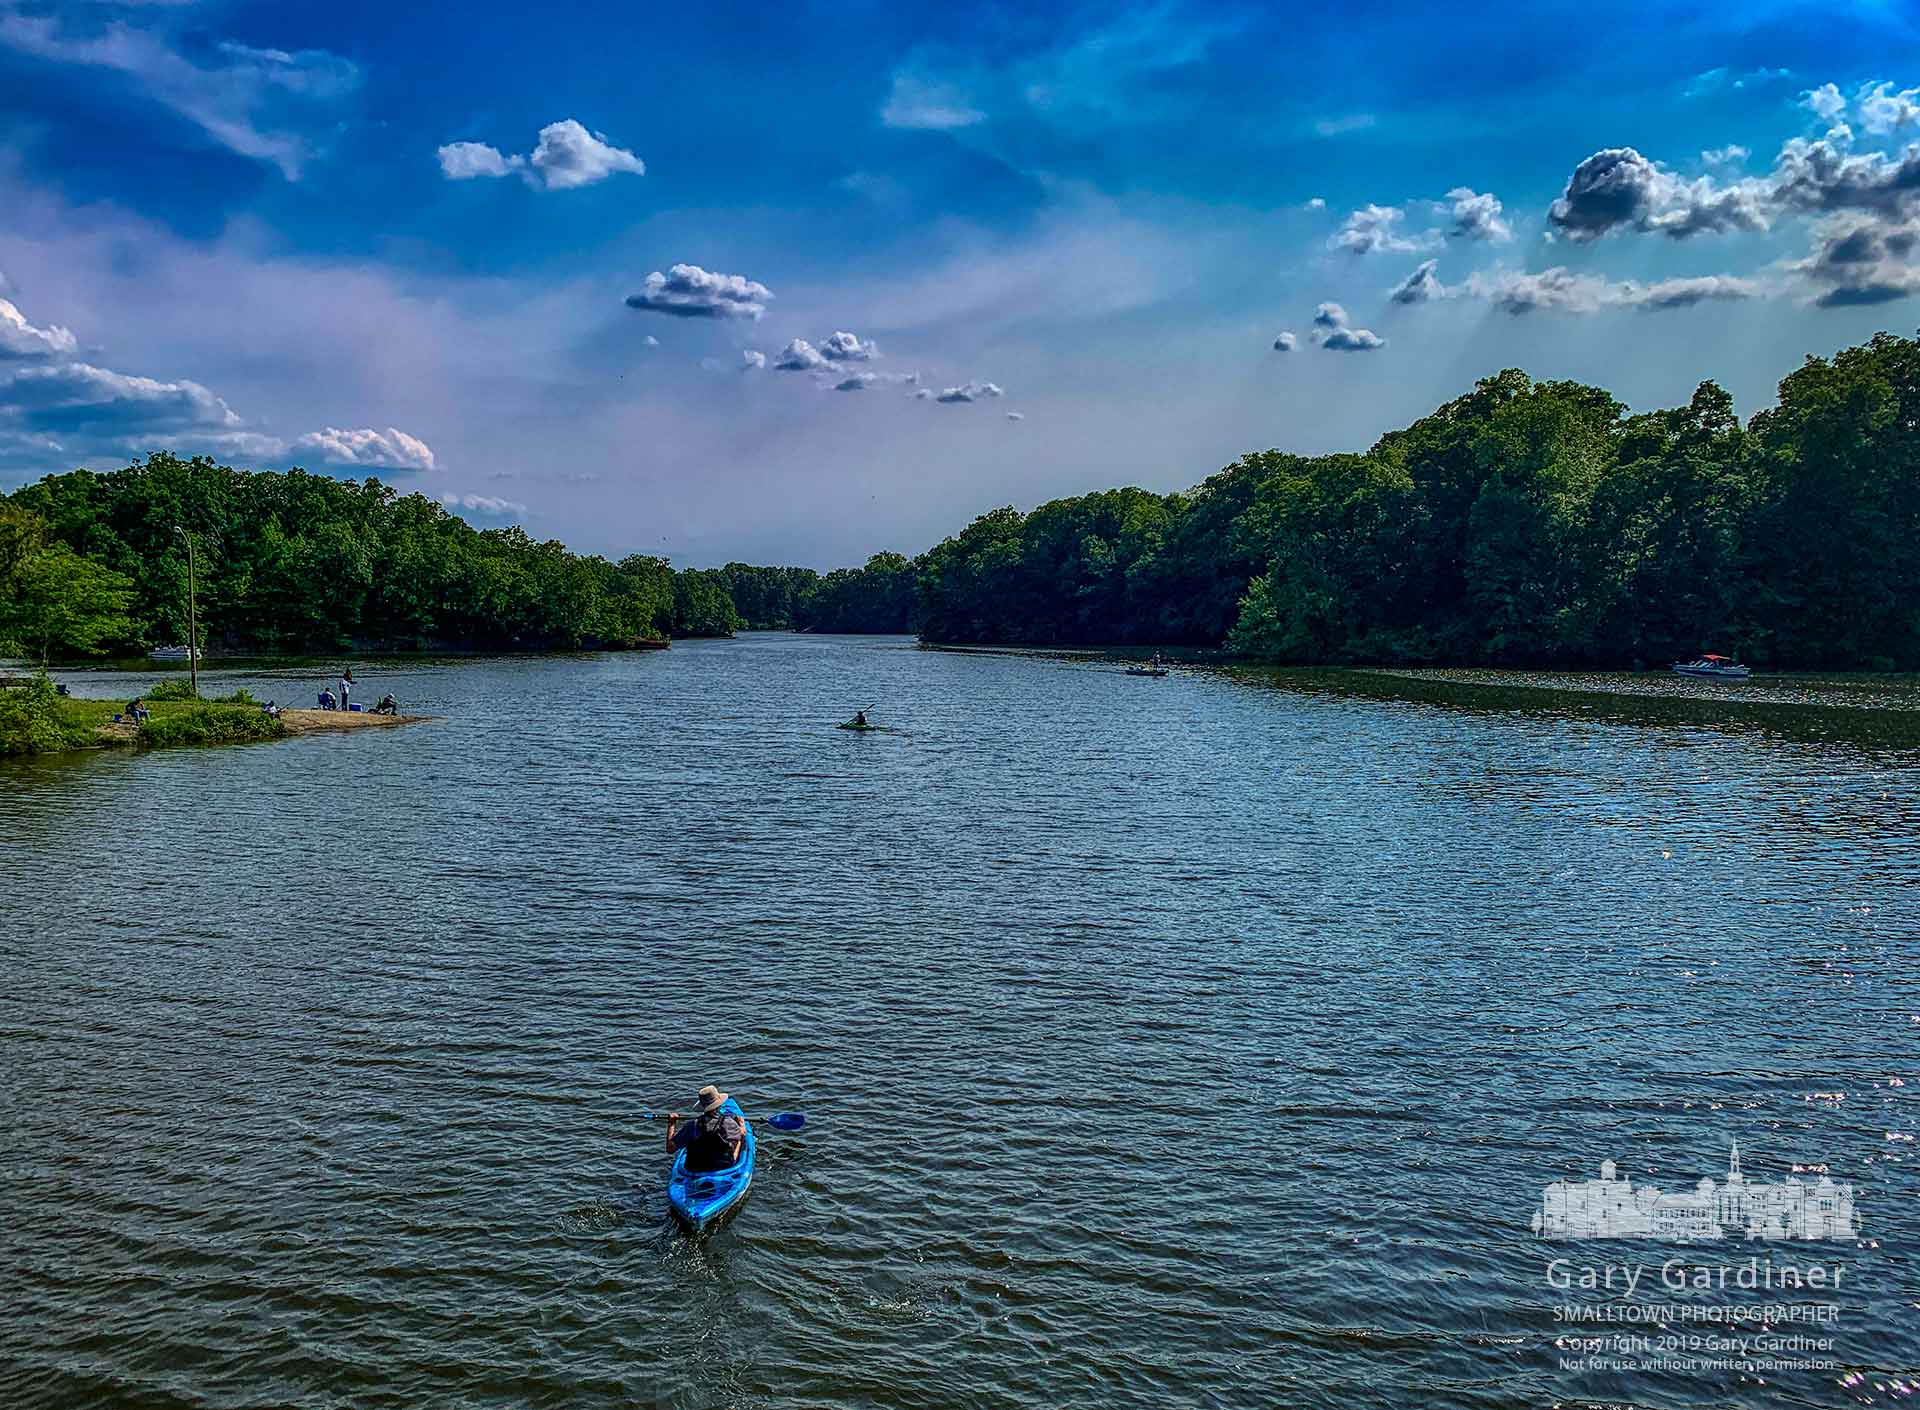 Kayakers paddle across an inlet on the northern end of Hoover Reservoir near Galena in the late afternoon sun. My Final Photo for June 1, 2019.